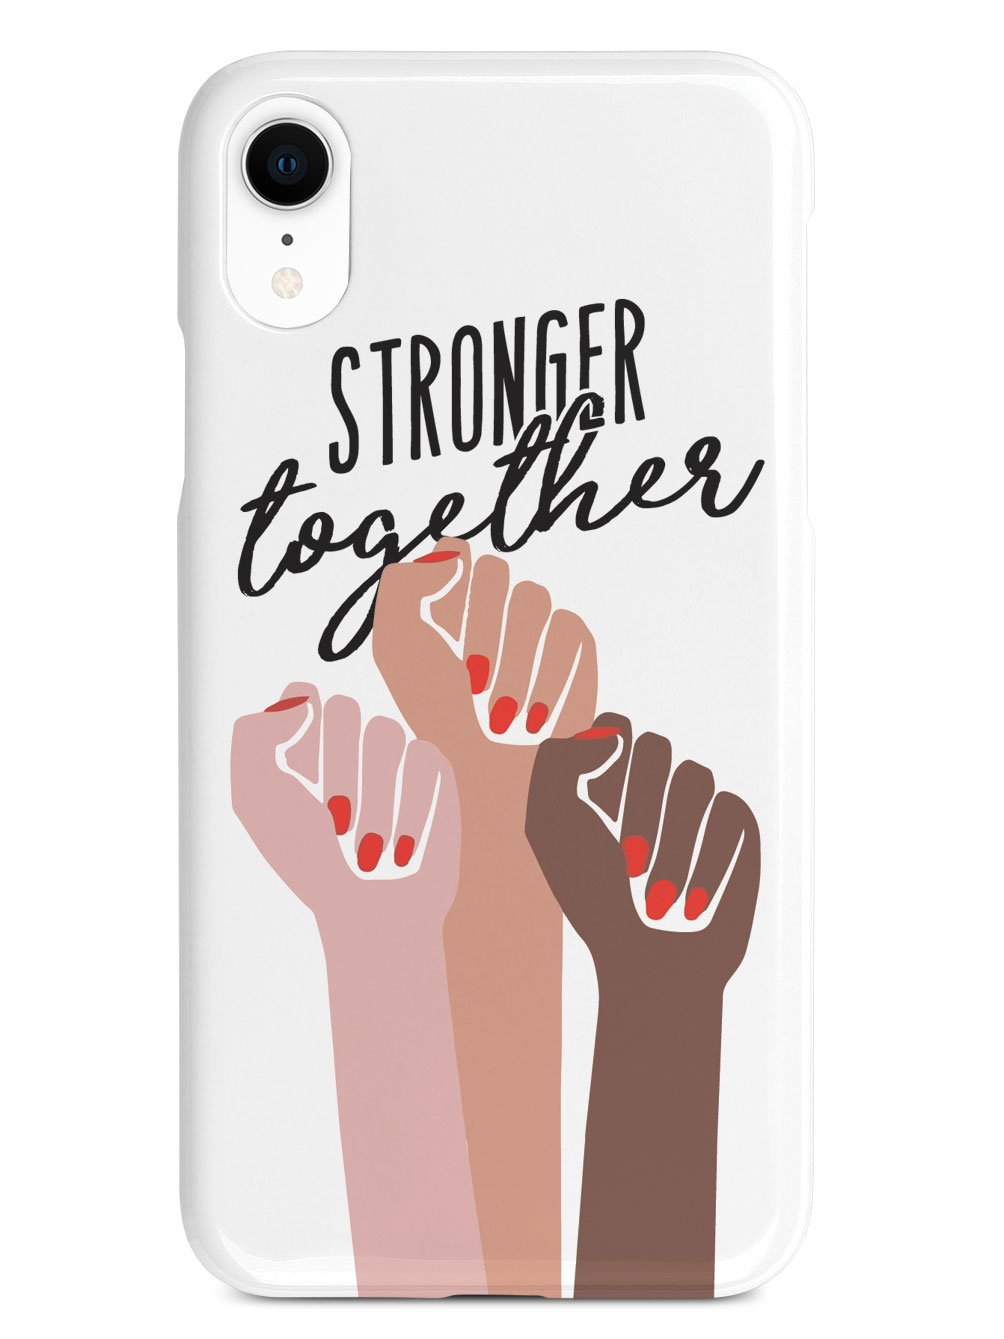 Stronger Together - Women's March Solidarity - White Case - pipercleo.com